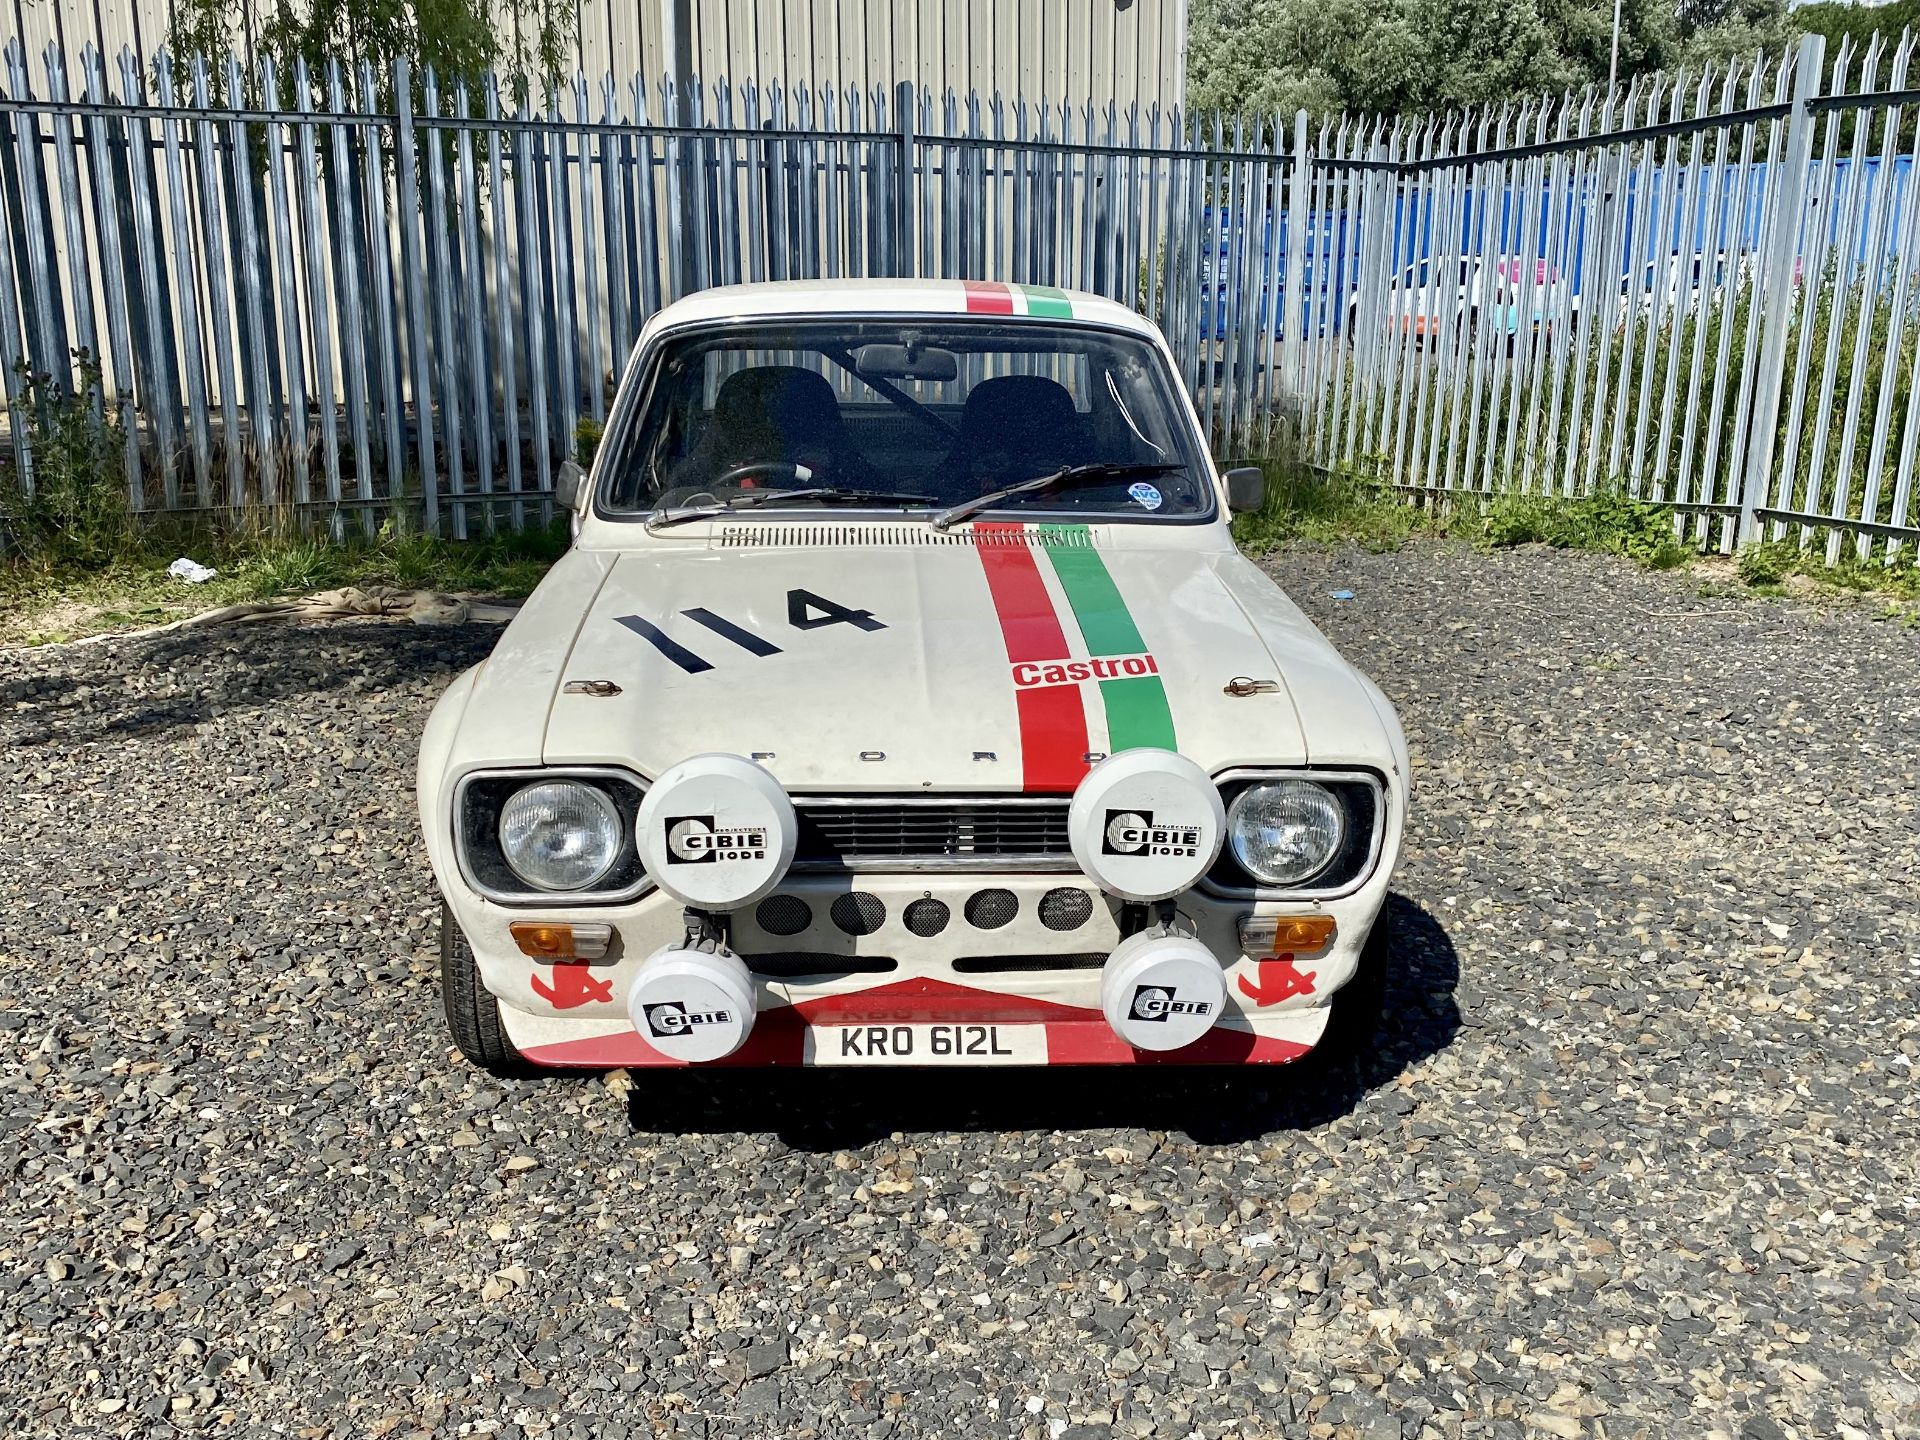 Ford Escort Mexico - Image 25 of 51